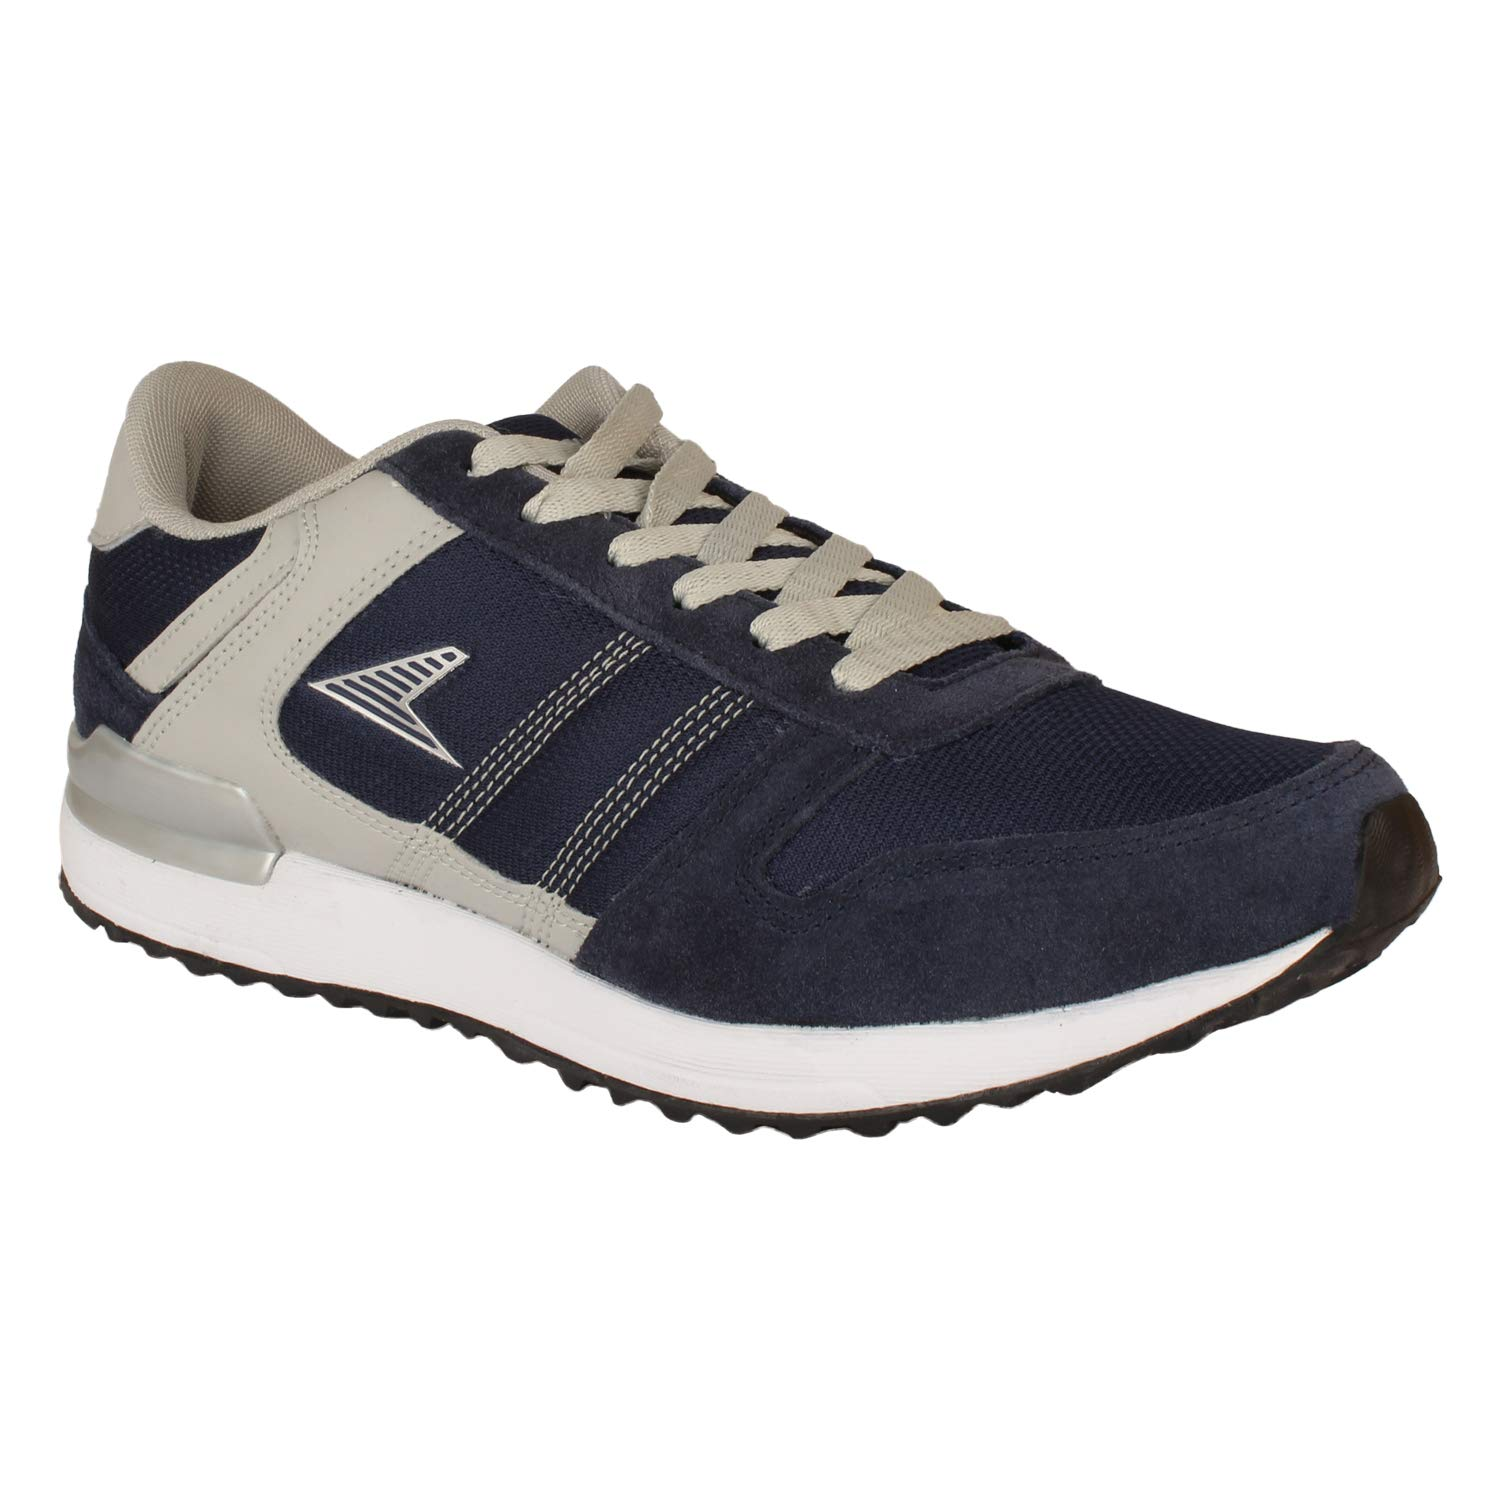 Buy BATA Men Sports Shoes at Amazon.in